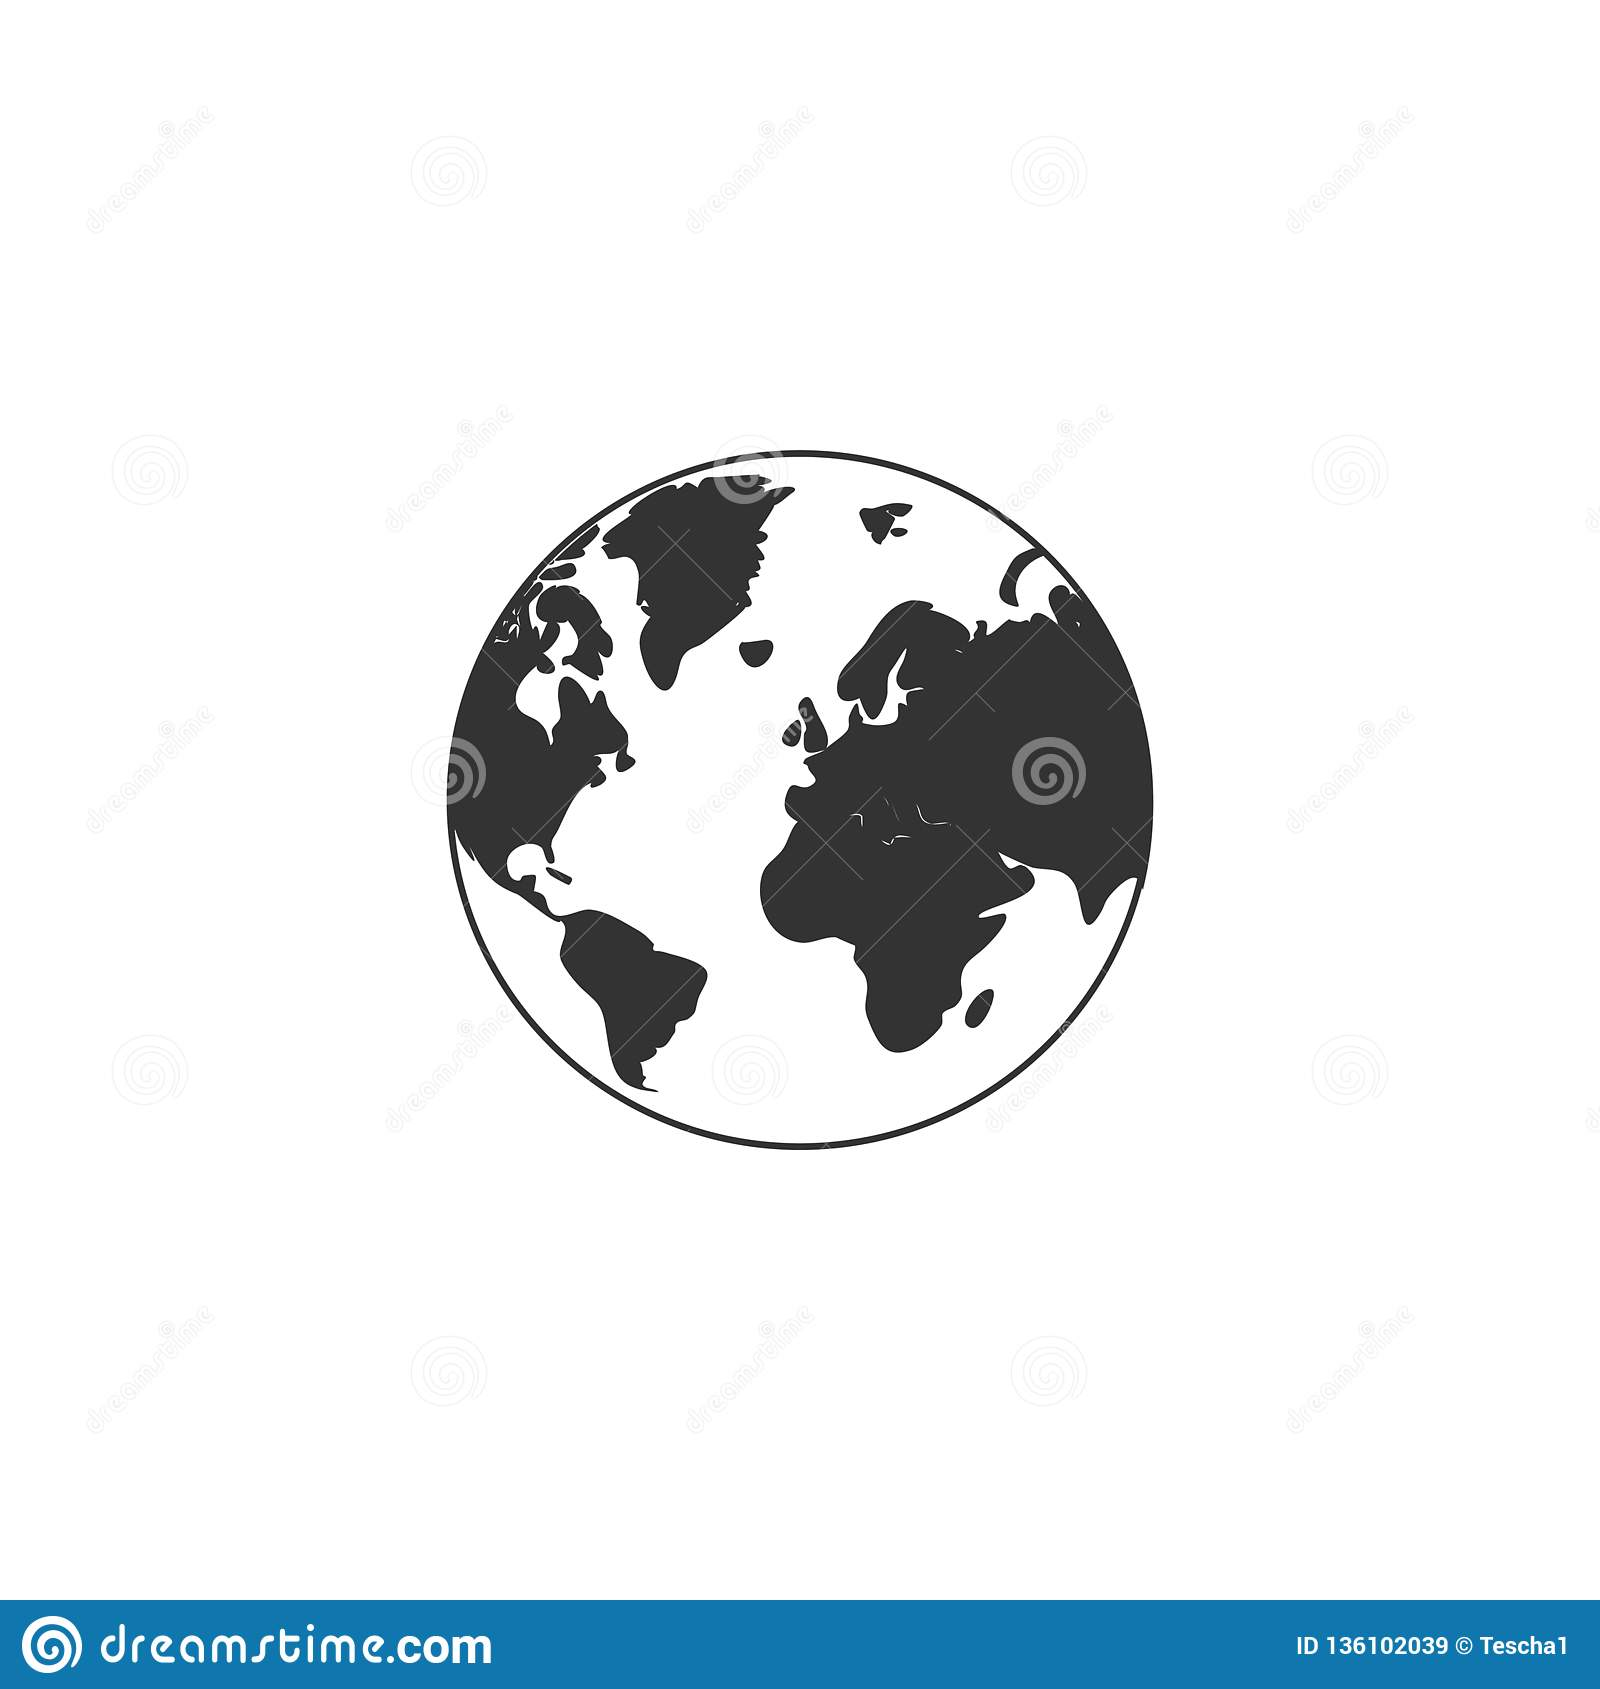 Browser, earth, globe, internet, map, planet, world icon   Earth Flat Icon Eps